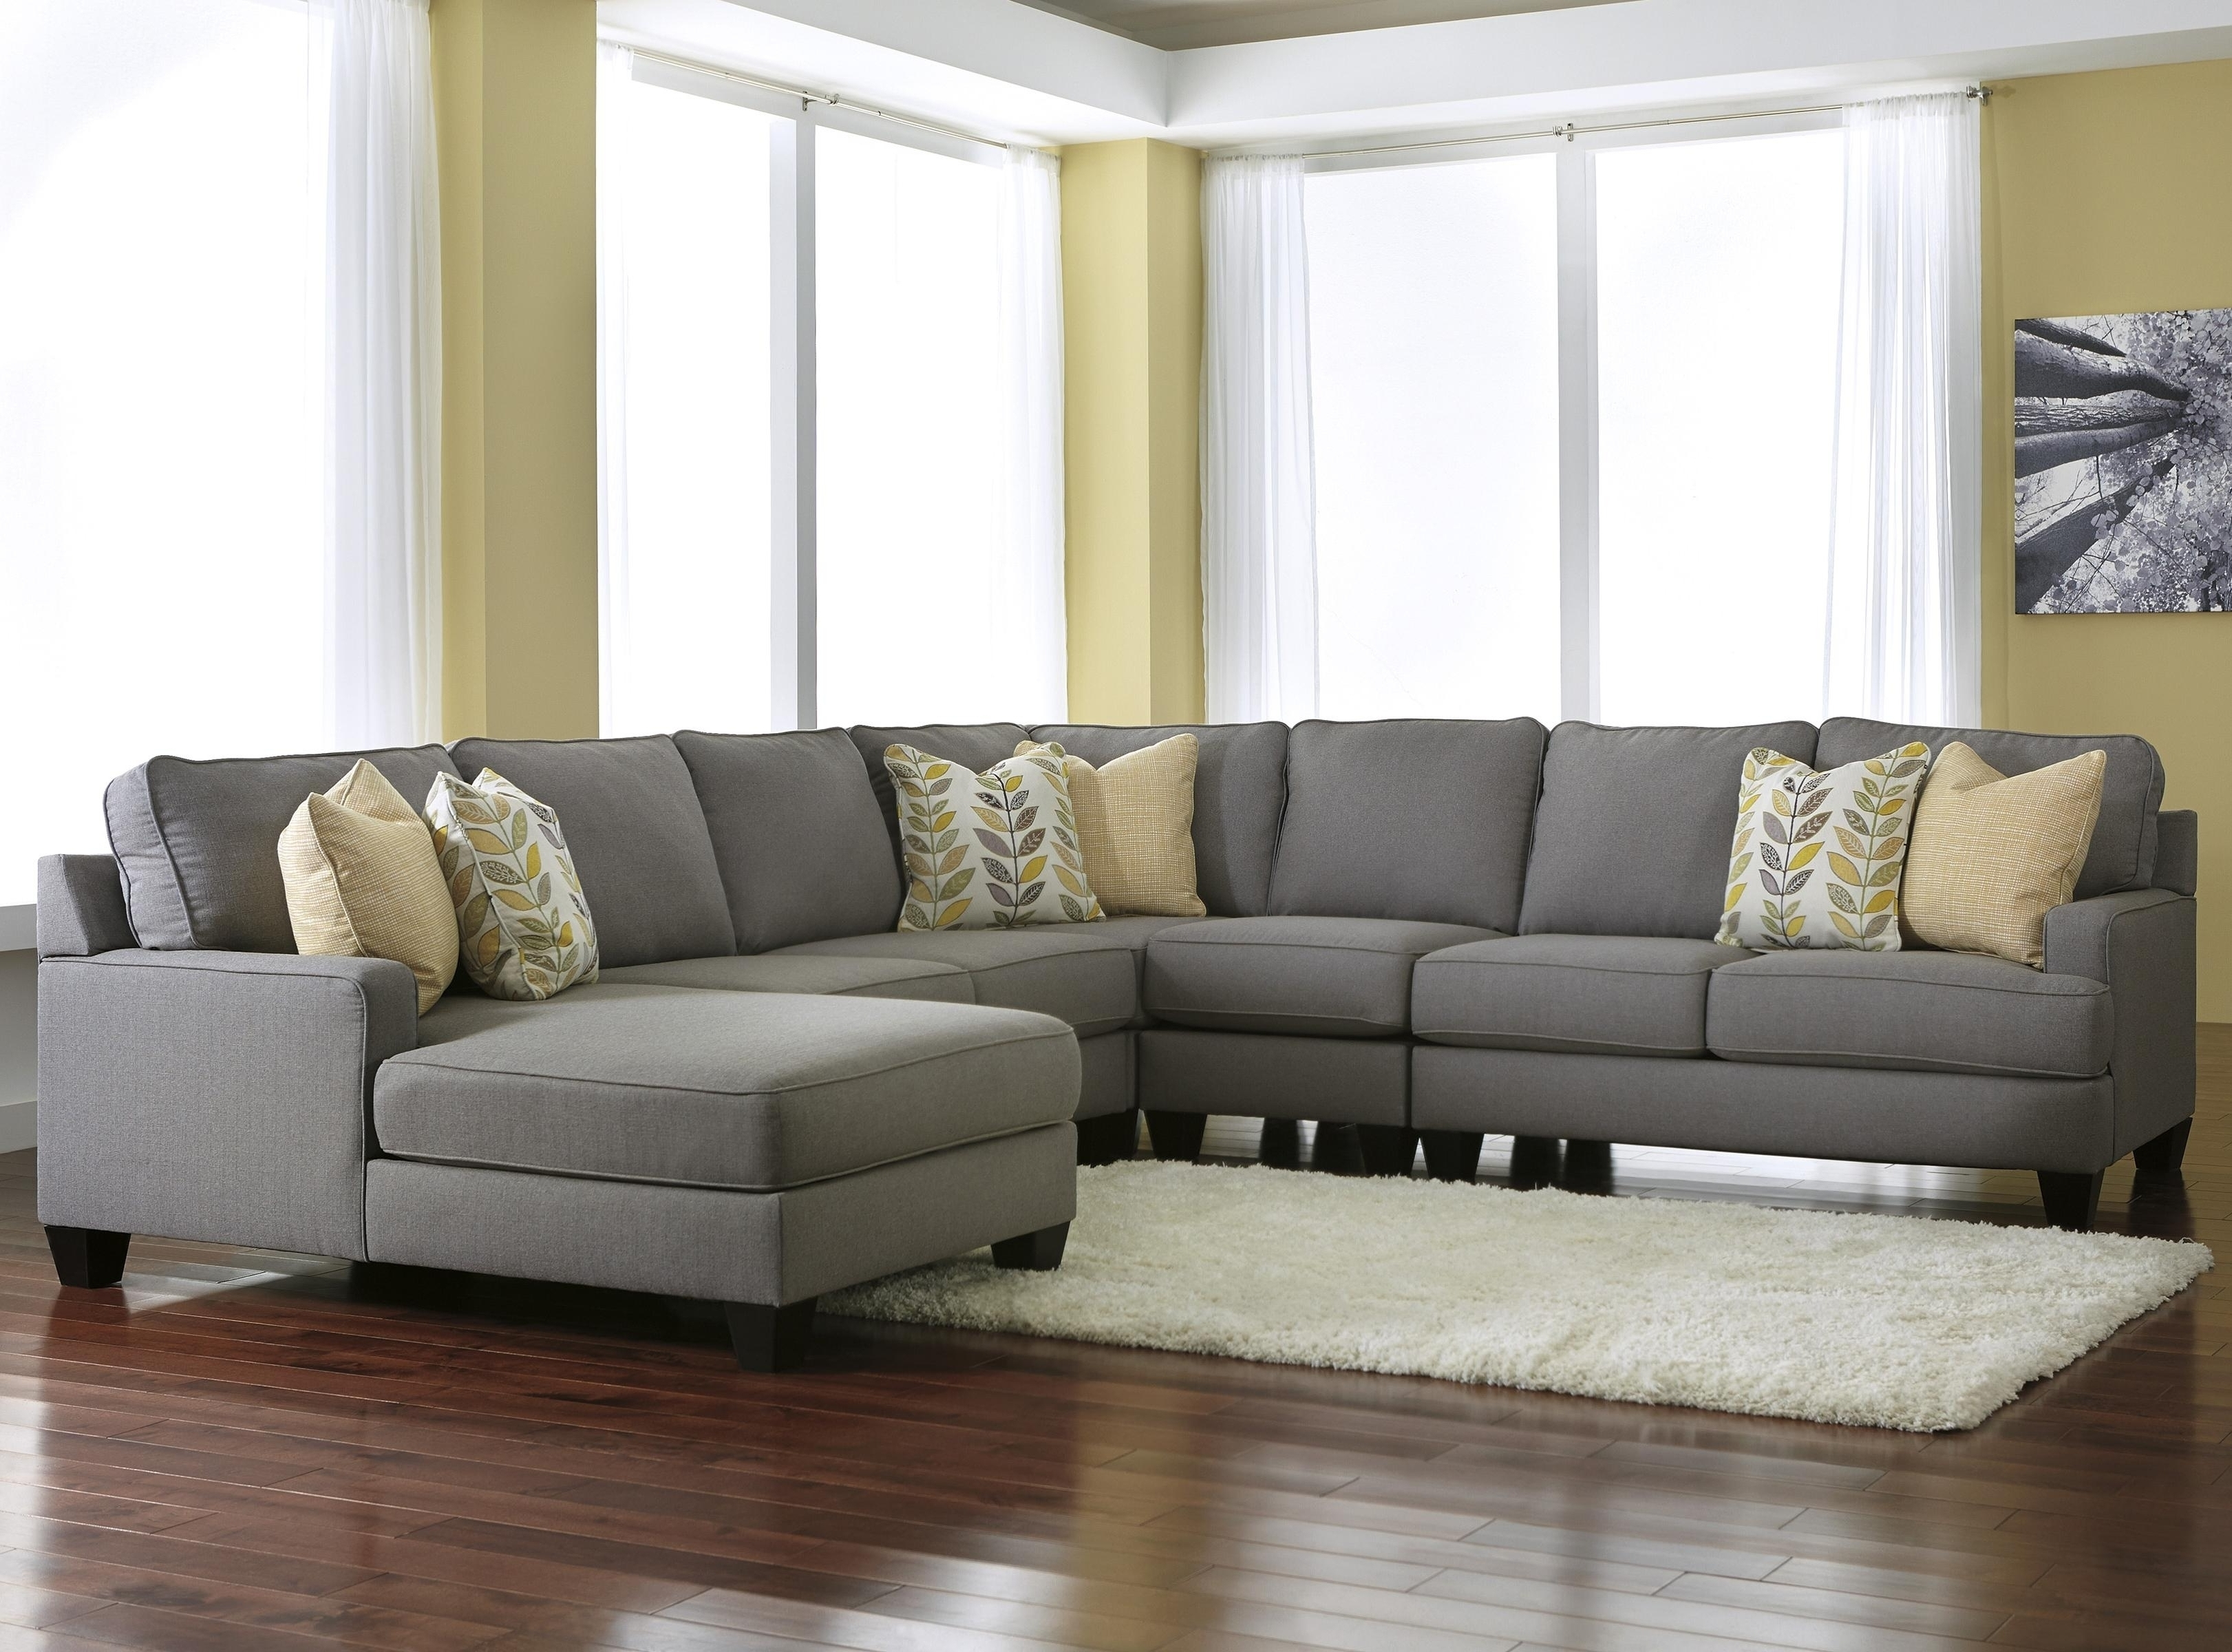 Most Recent Duluth Mn Sectional Sofas with regard to Sectional Sofas Duluth Mn • Sectional Sofa